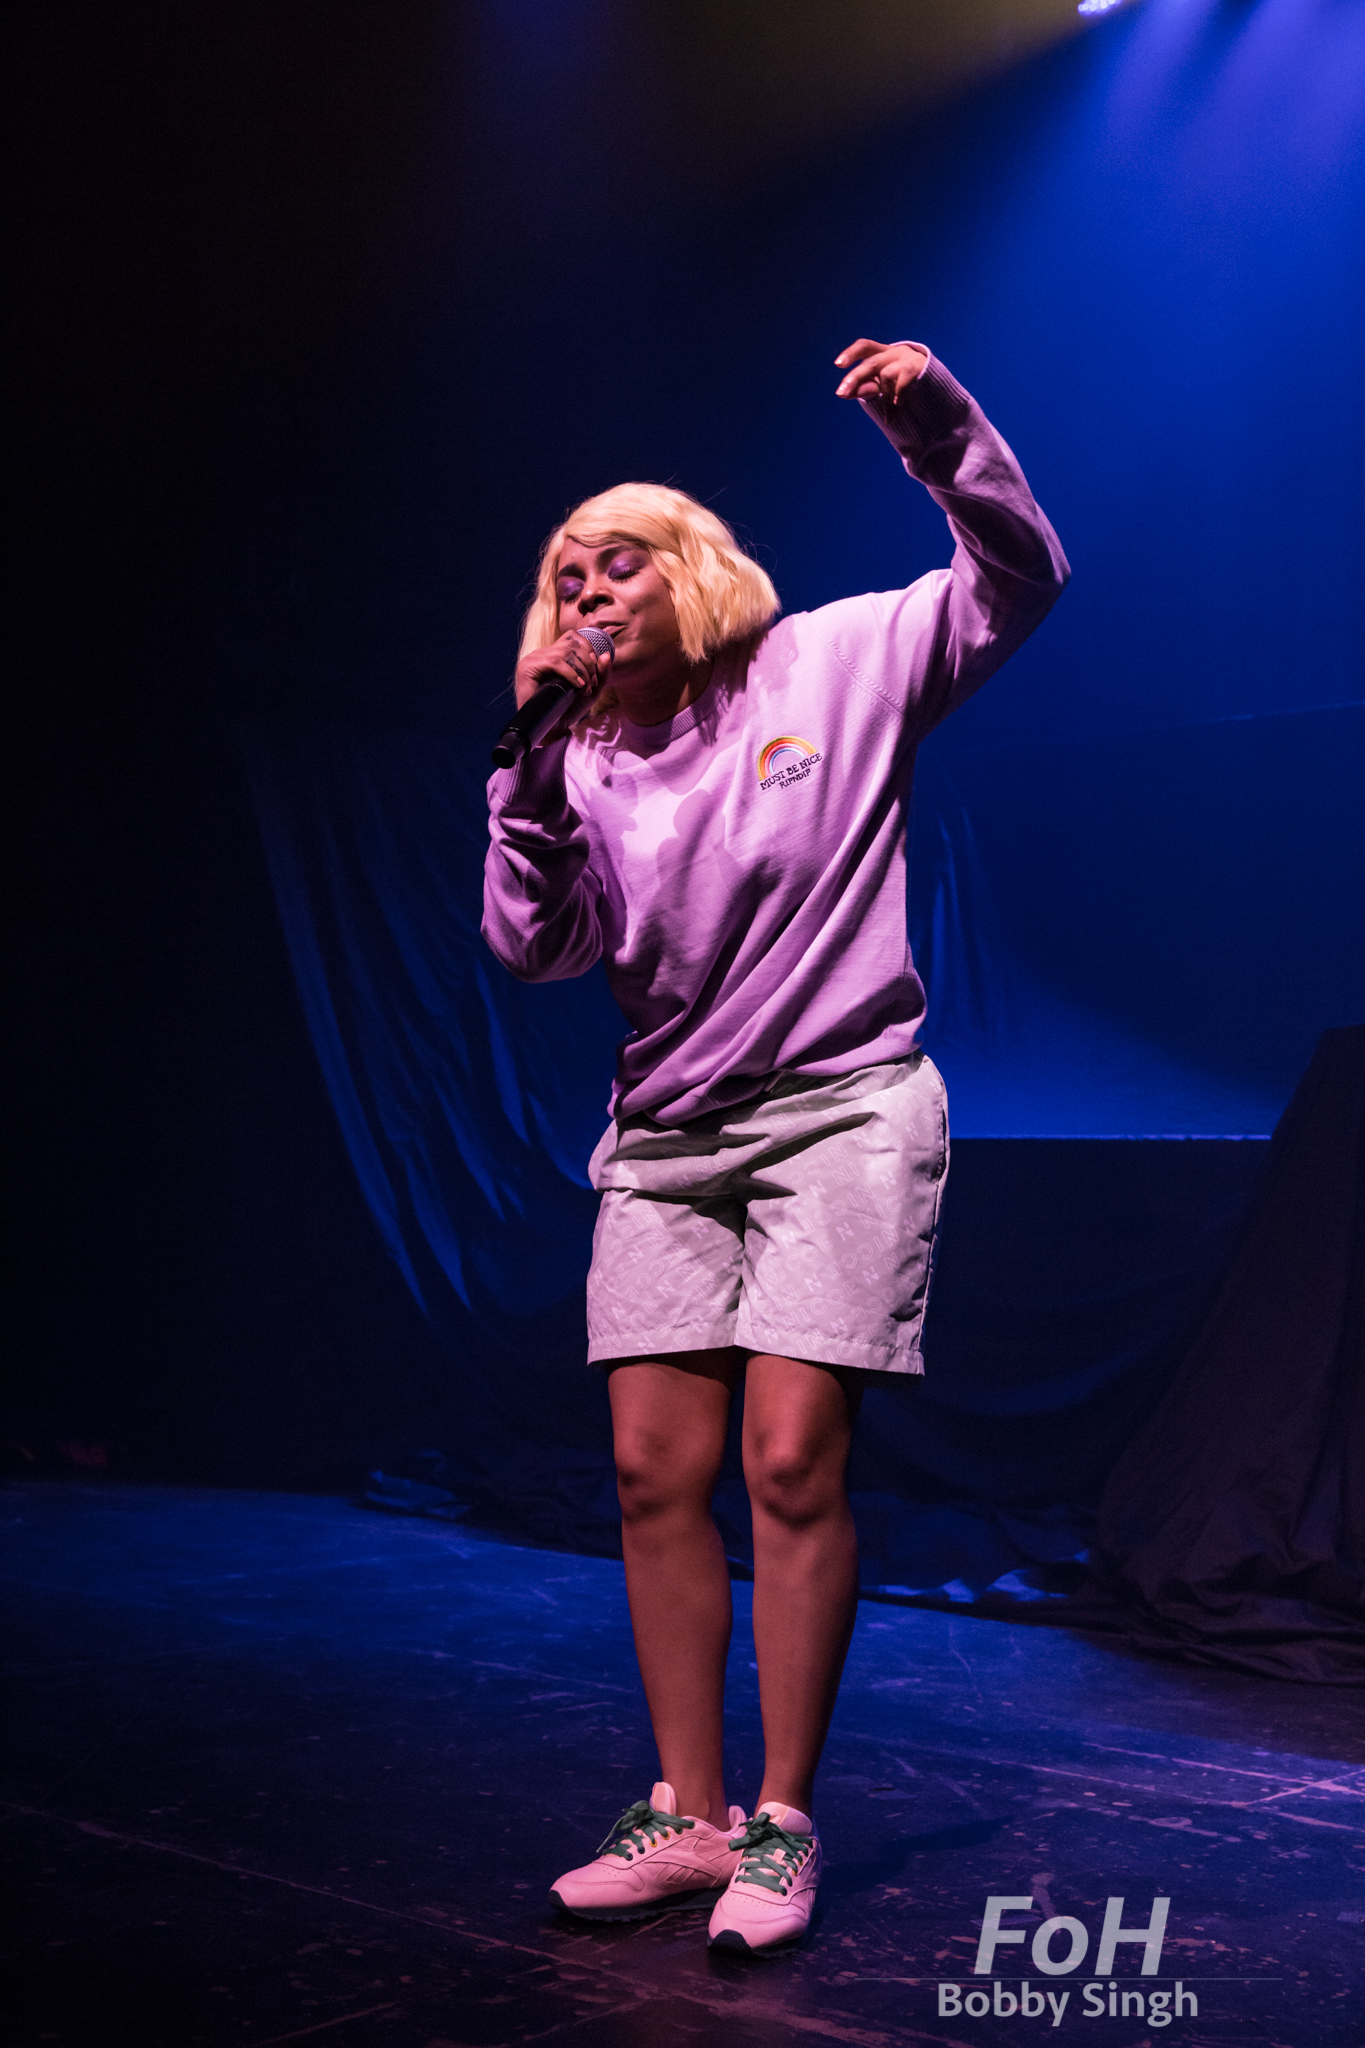 Tayla Parx performs at Danforth Music Hall in Toronto, CANADA.